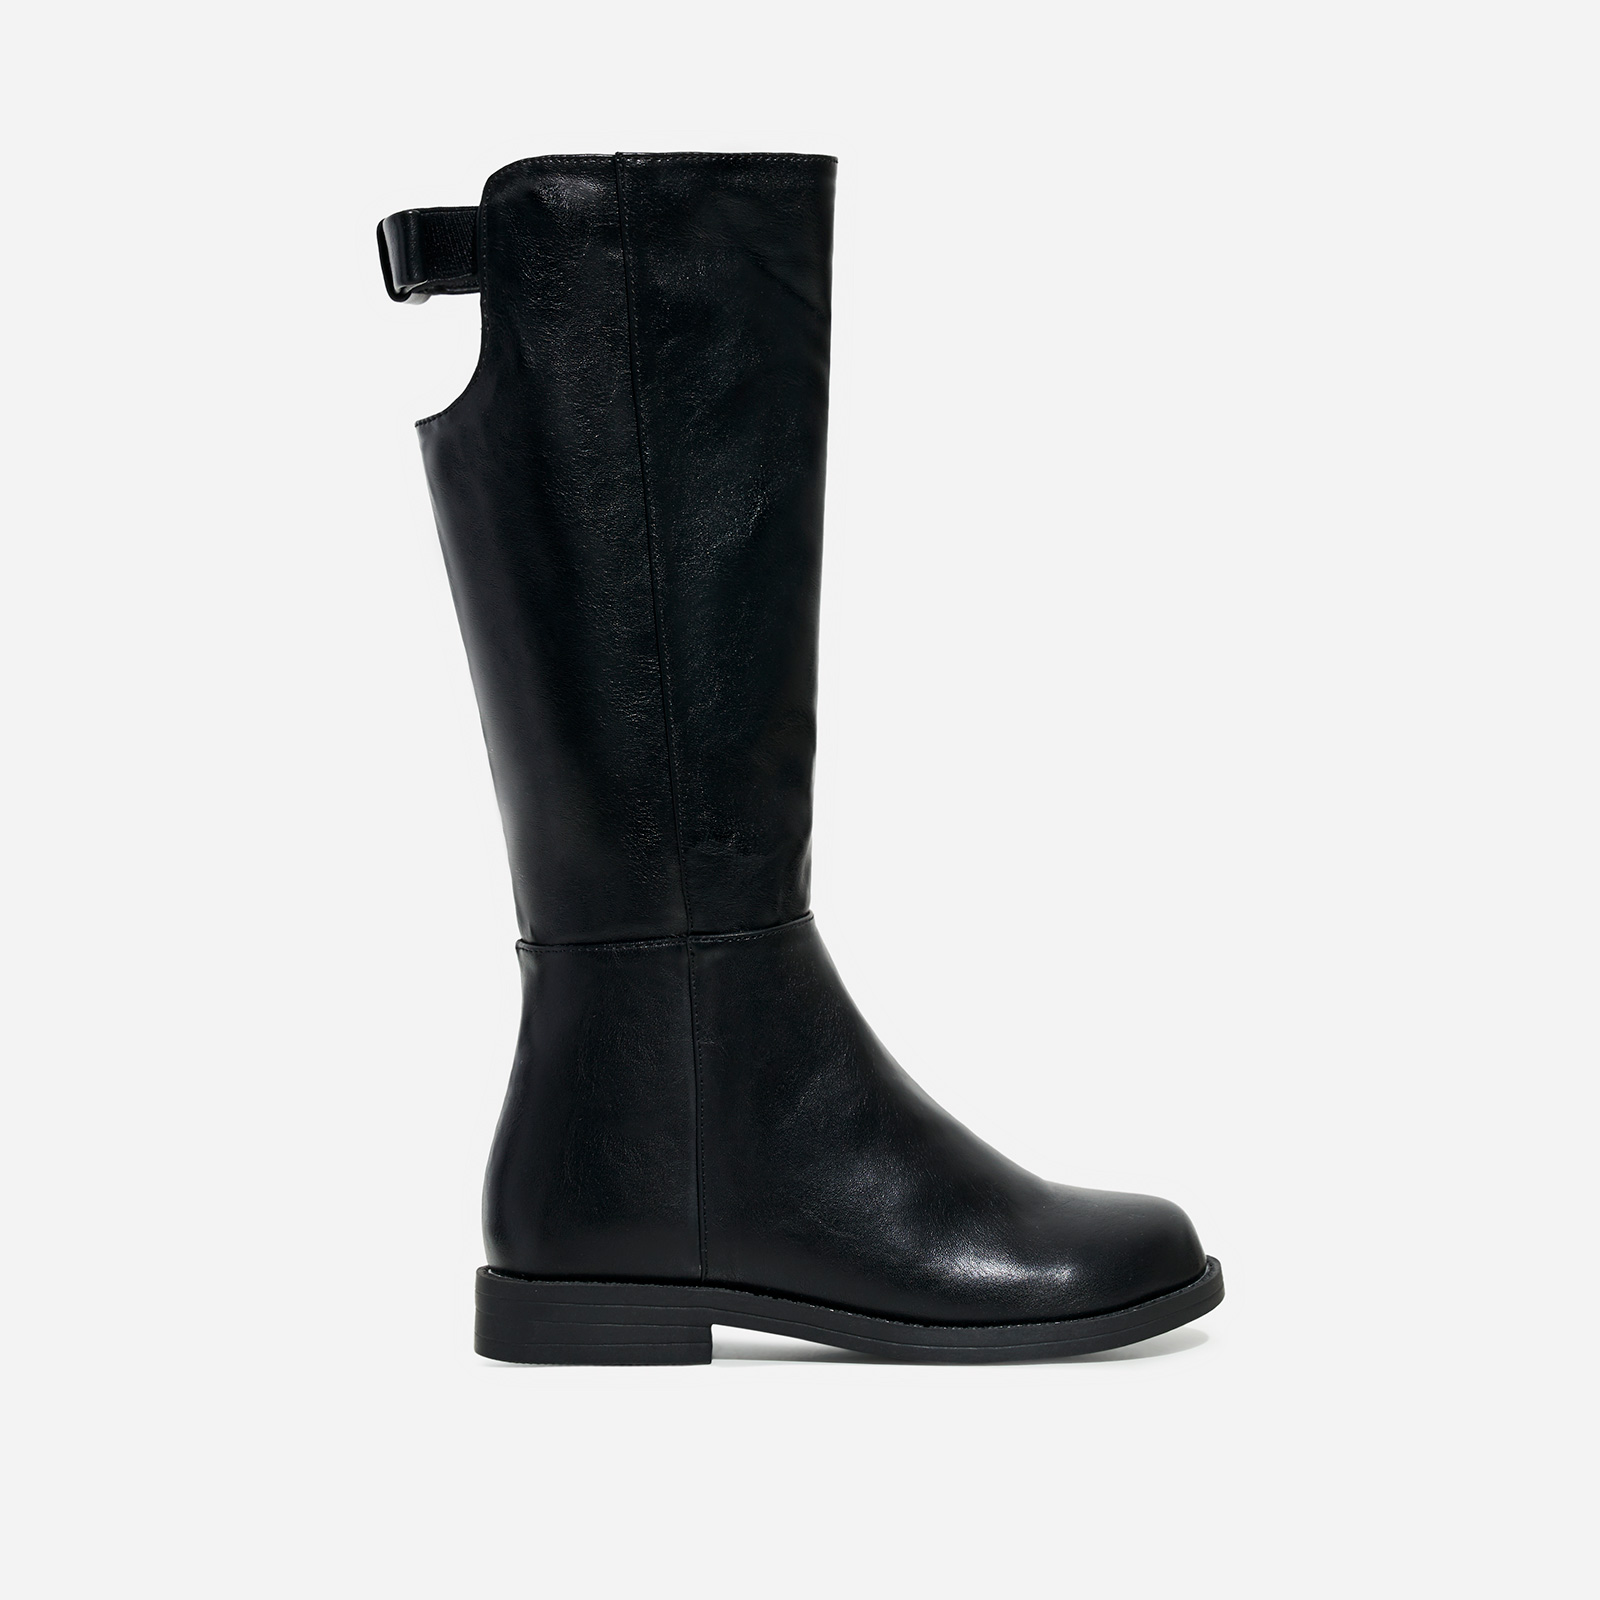 Flossy Girl's Bow Detail Knee High Long Boot In Black Faux Leather